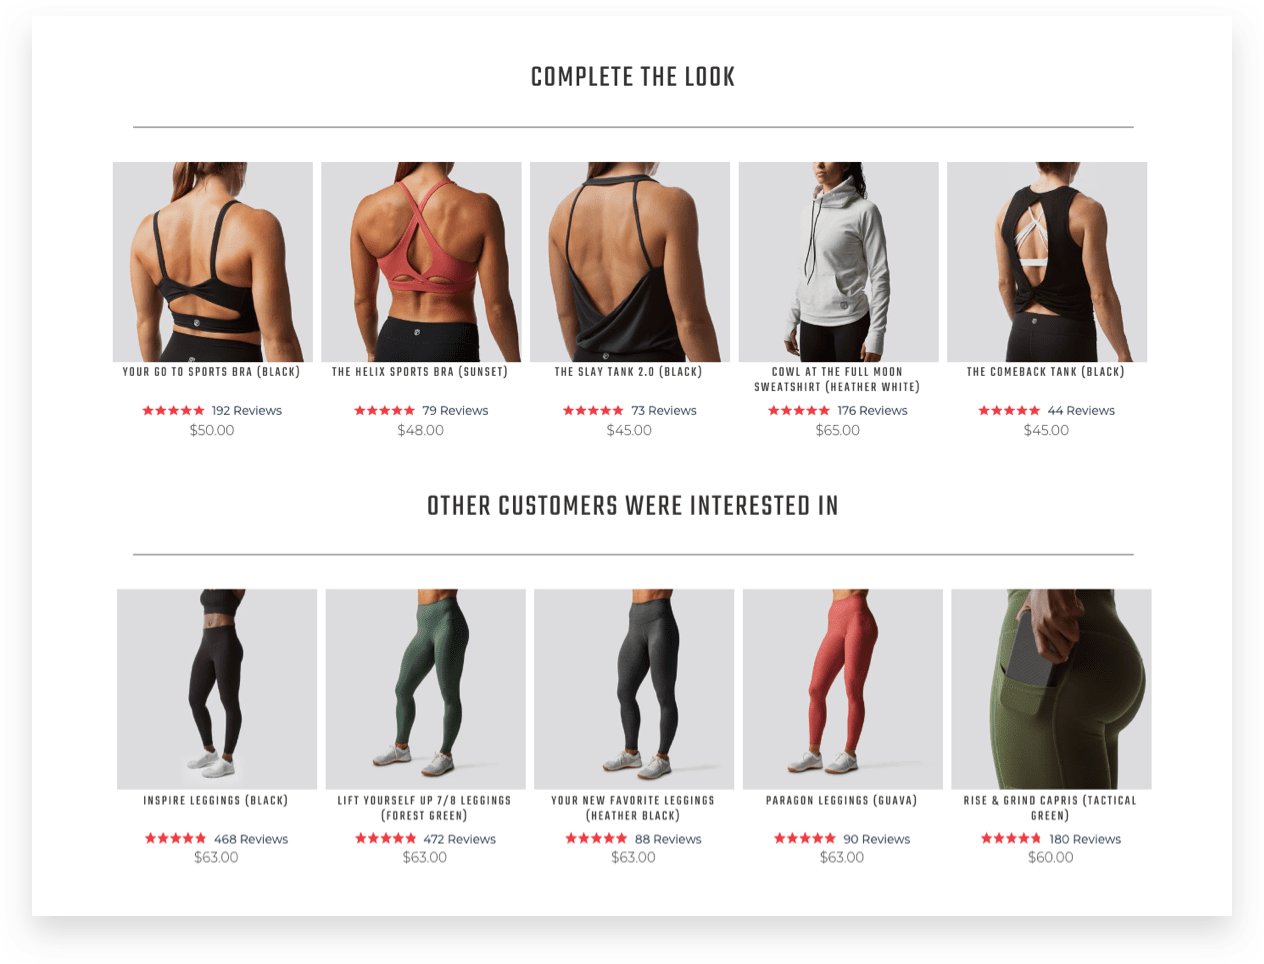 Born Primitive recommendations drive sales for the ecommerce fitness apparel brand